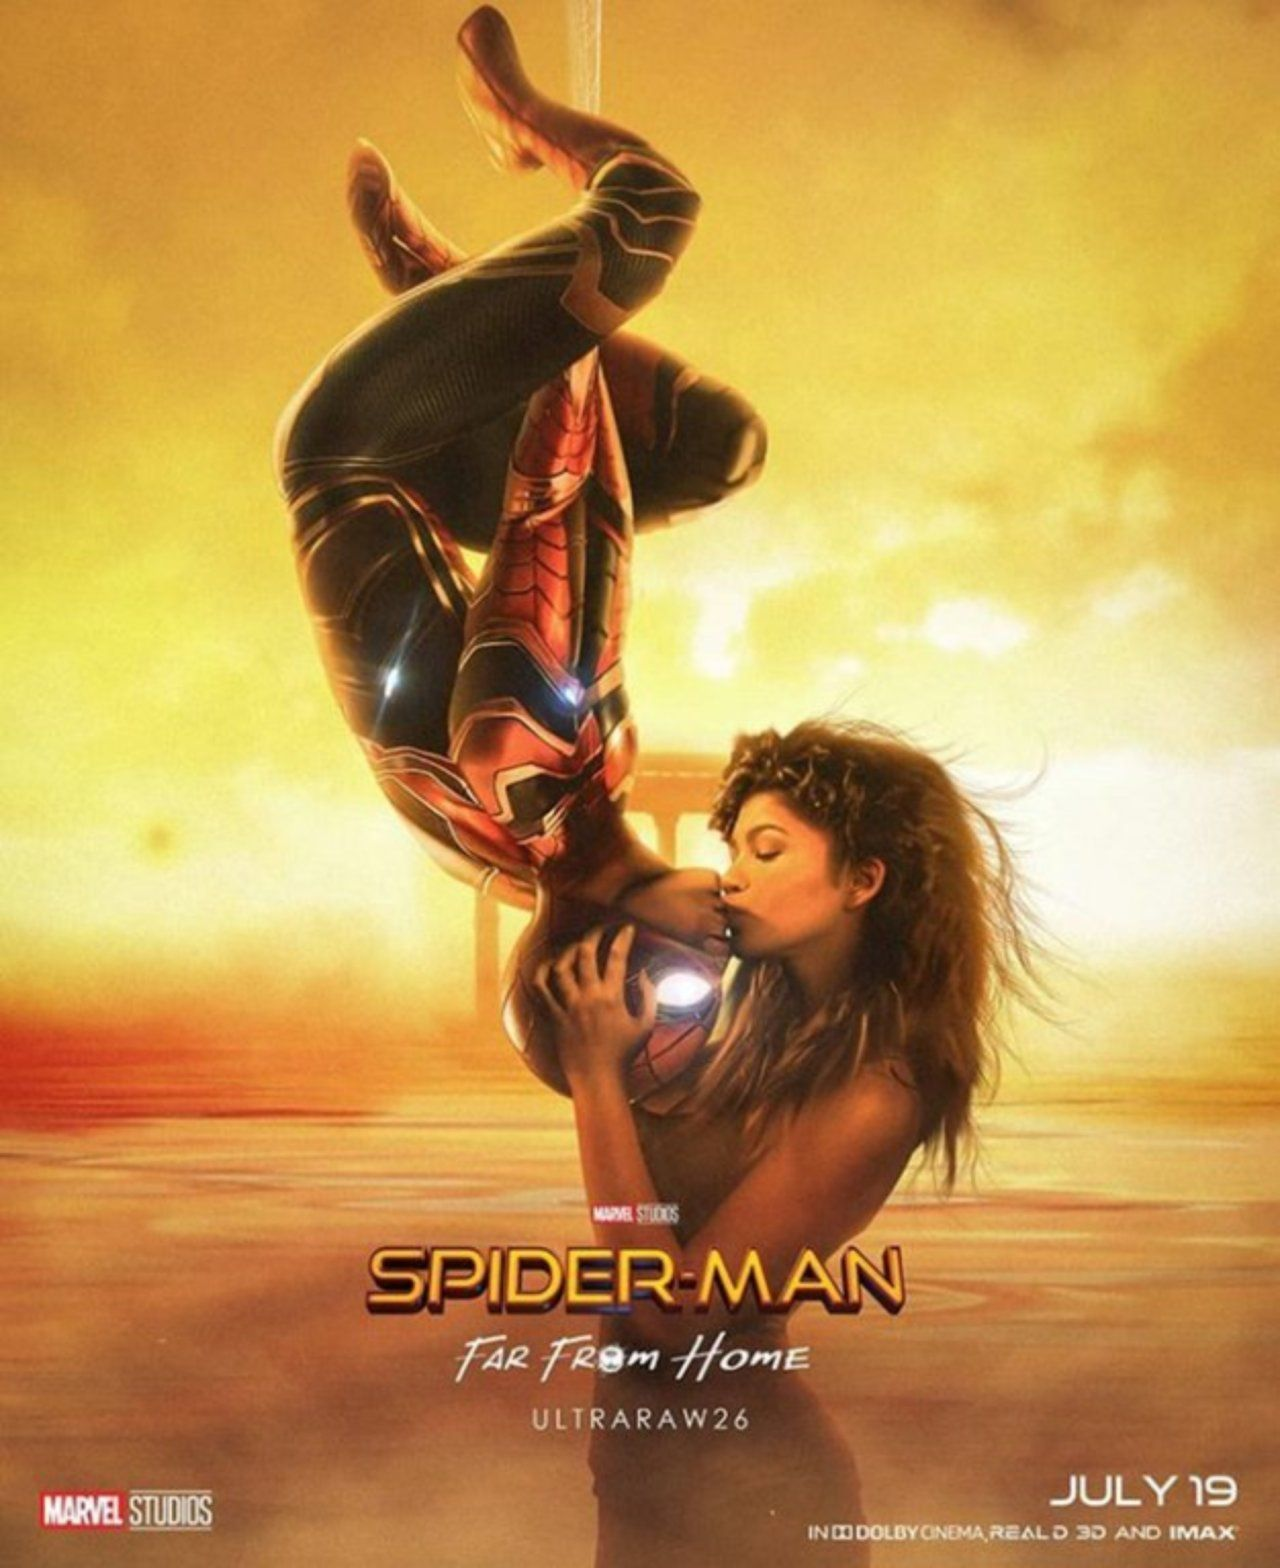 spider-man: far from home' fan poster pays tribute to original film